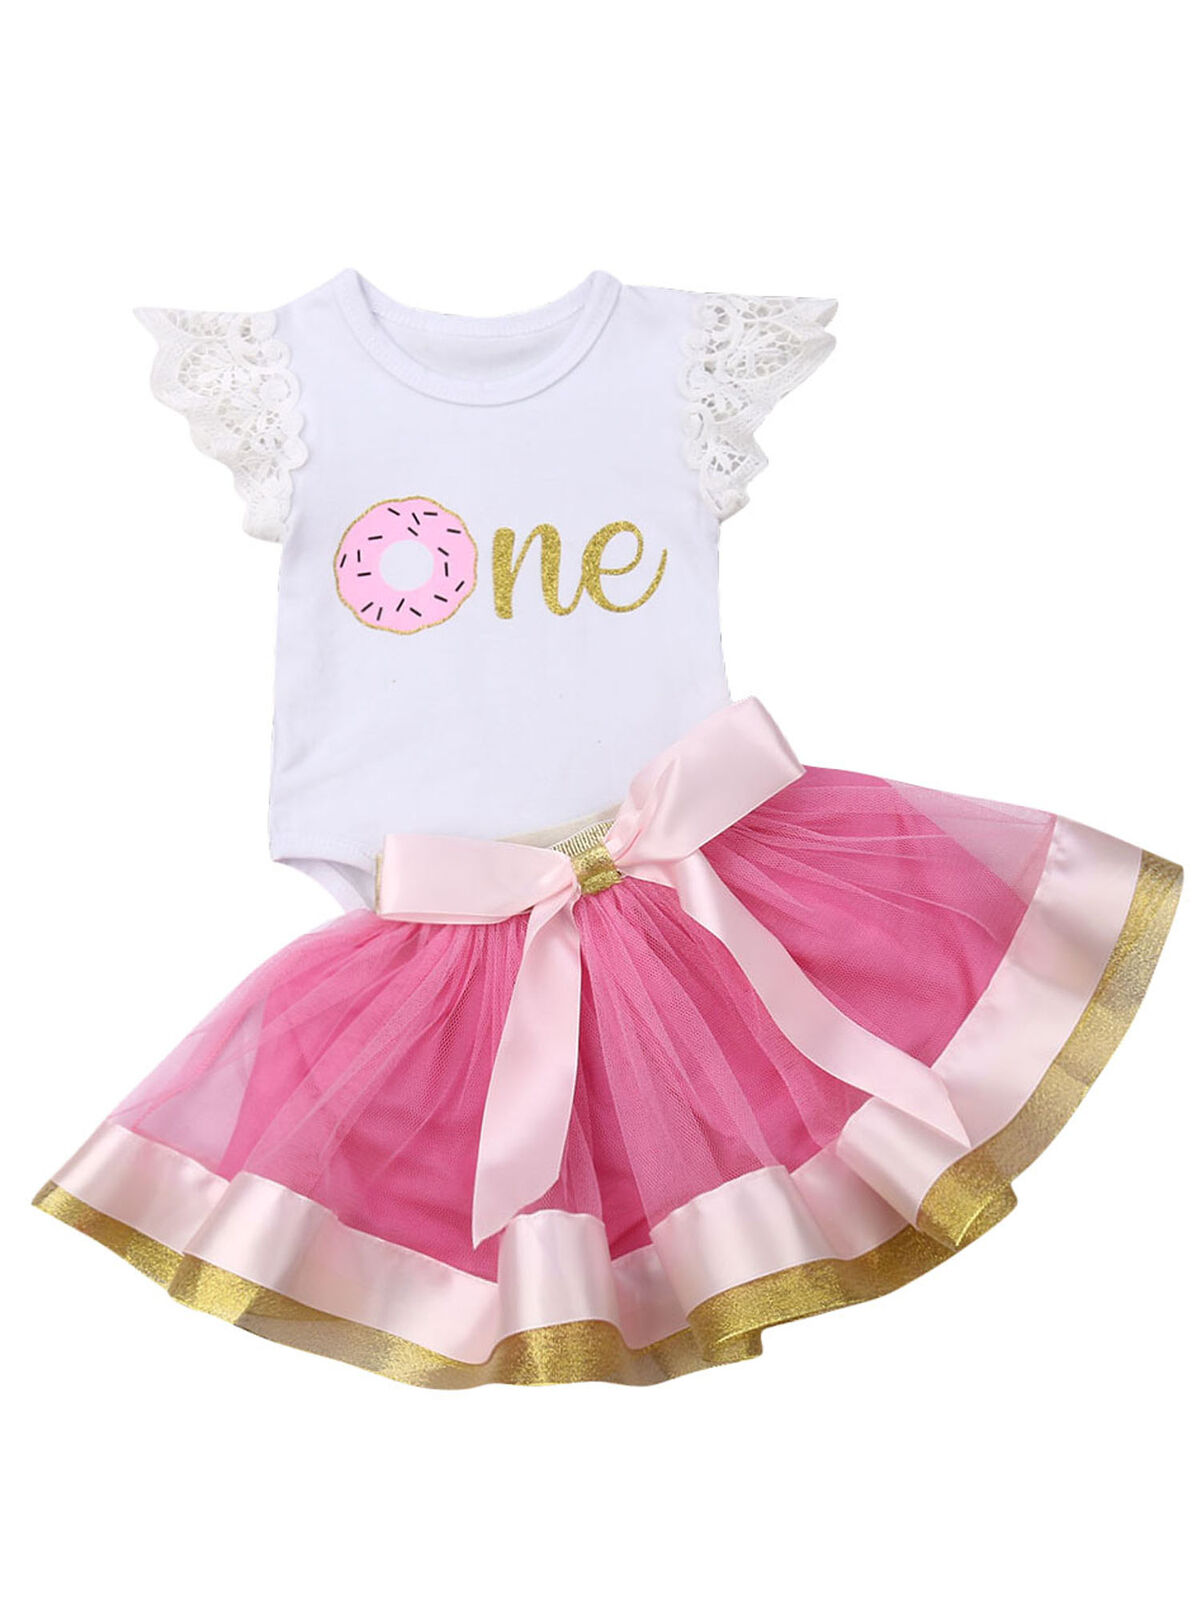 Newborn Baby Girls Pink Striped Tutu Dress First Birthday Skirt Outfits Casual Donut Print Girls Clothes Headband 2Pcs Set